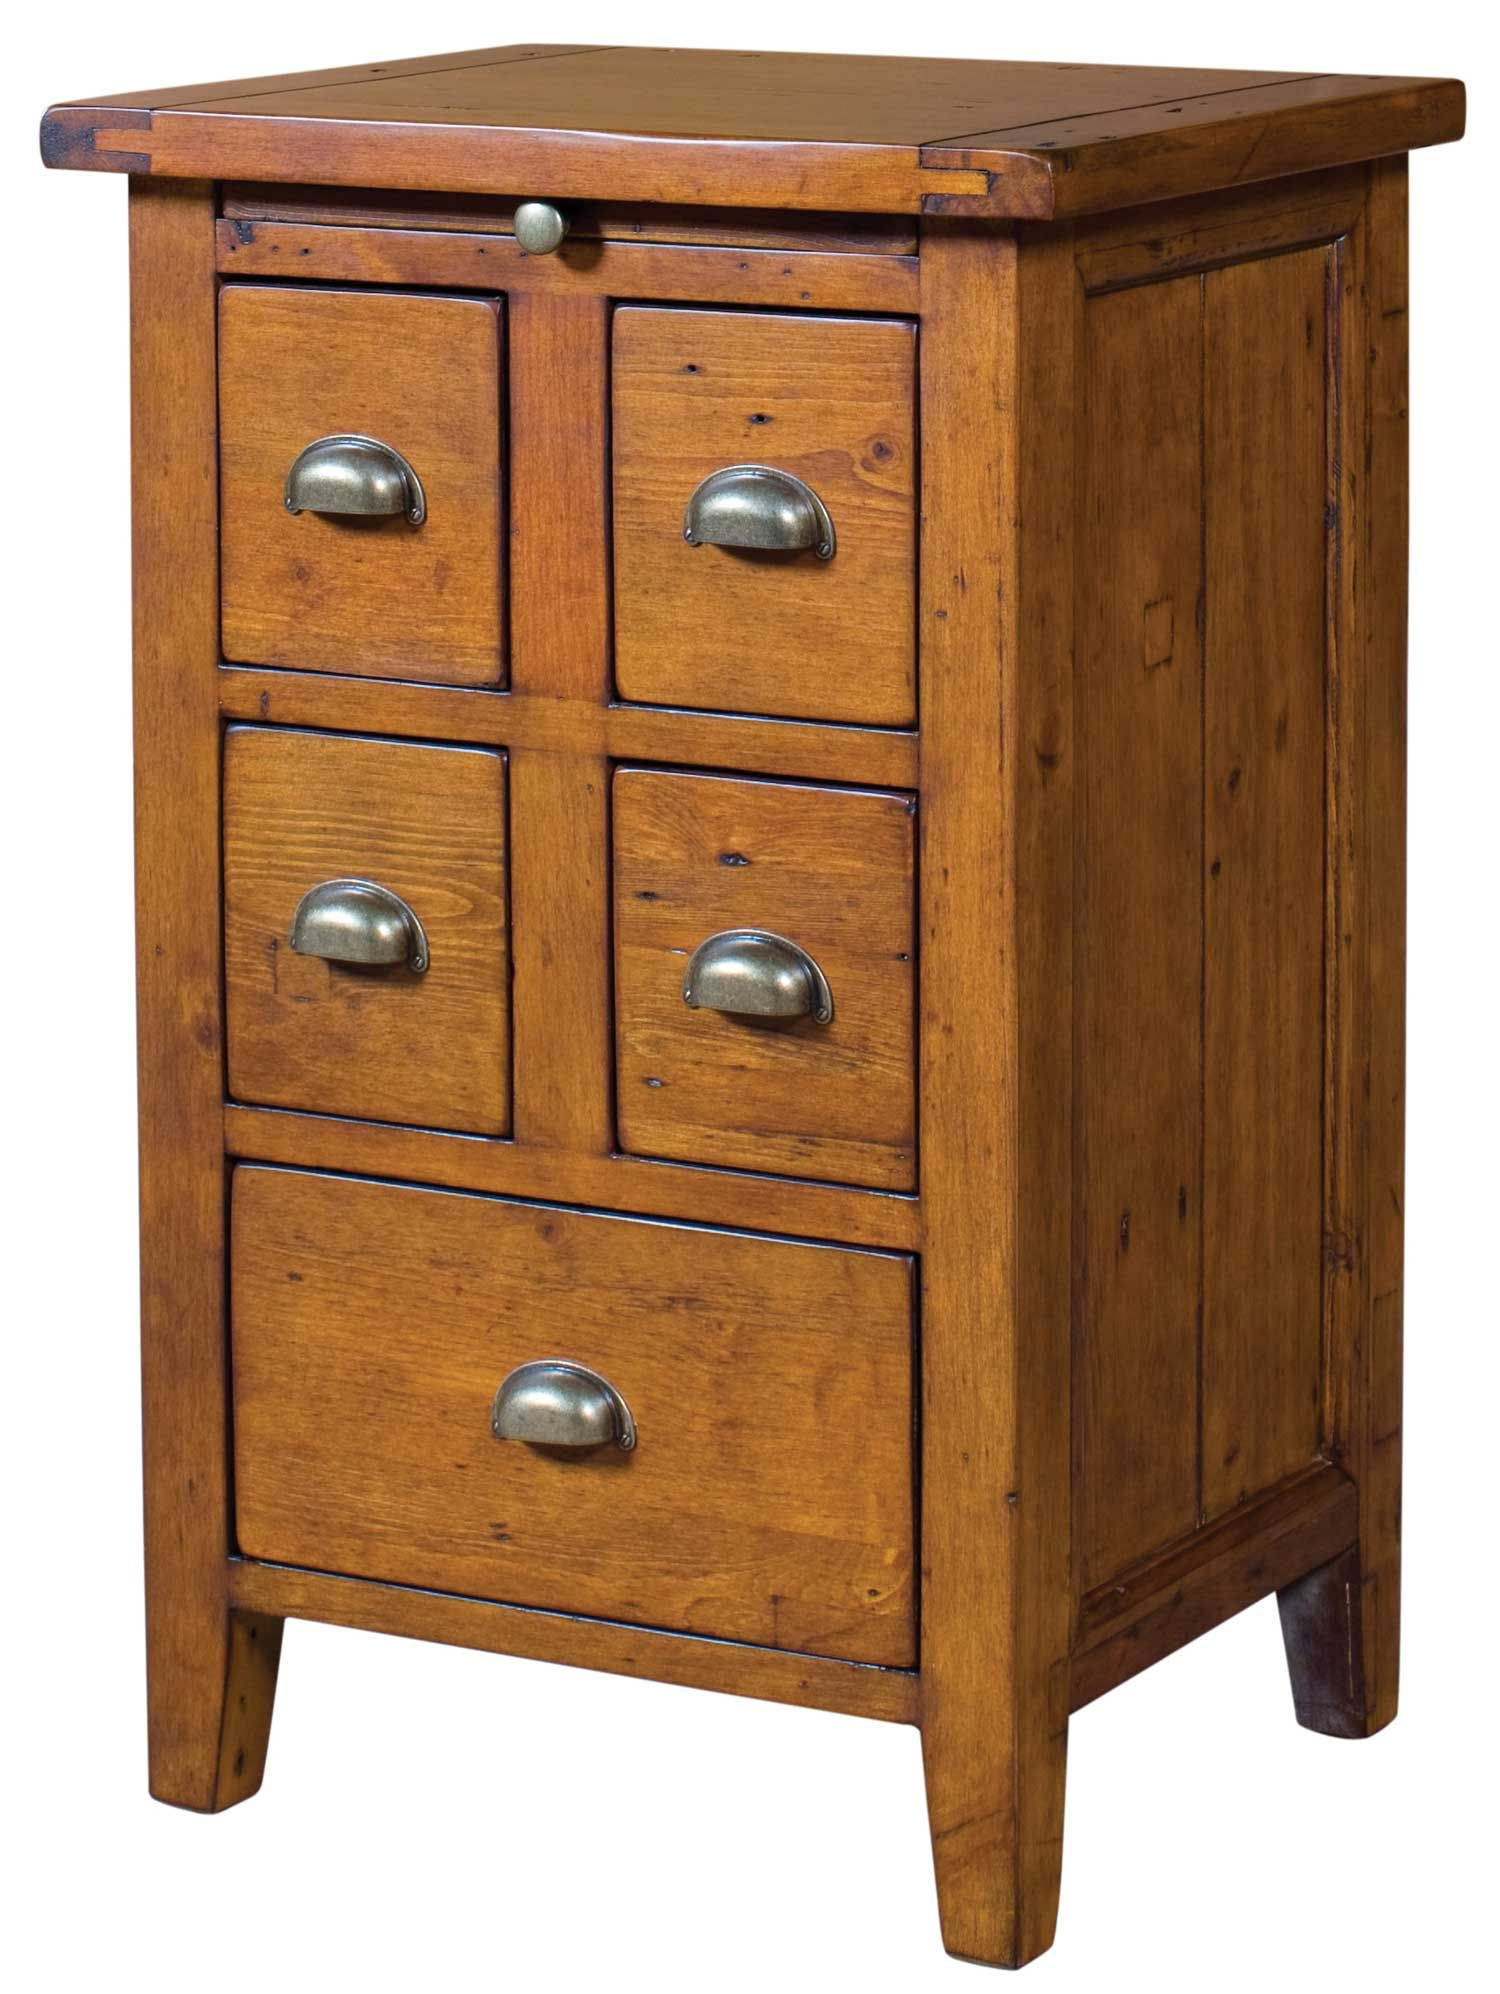 ELEPHANT FURNITURE BAKERSFIELD Storage/Utility Chest